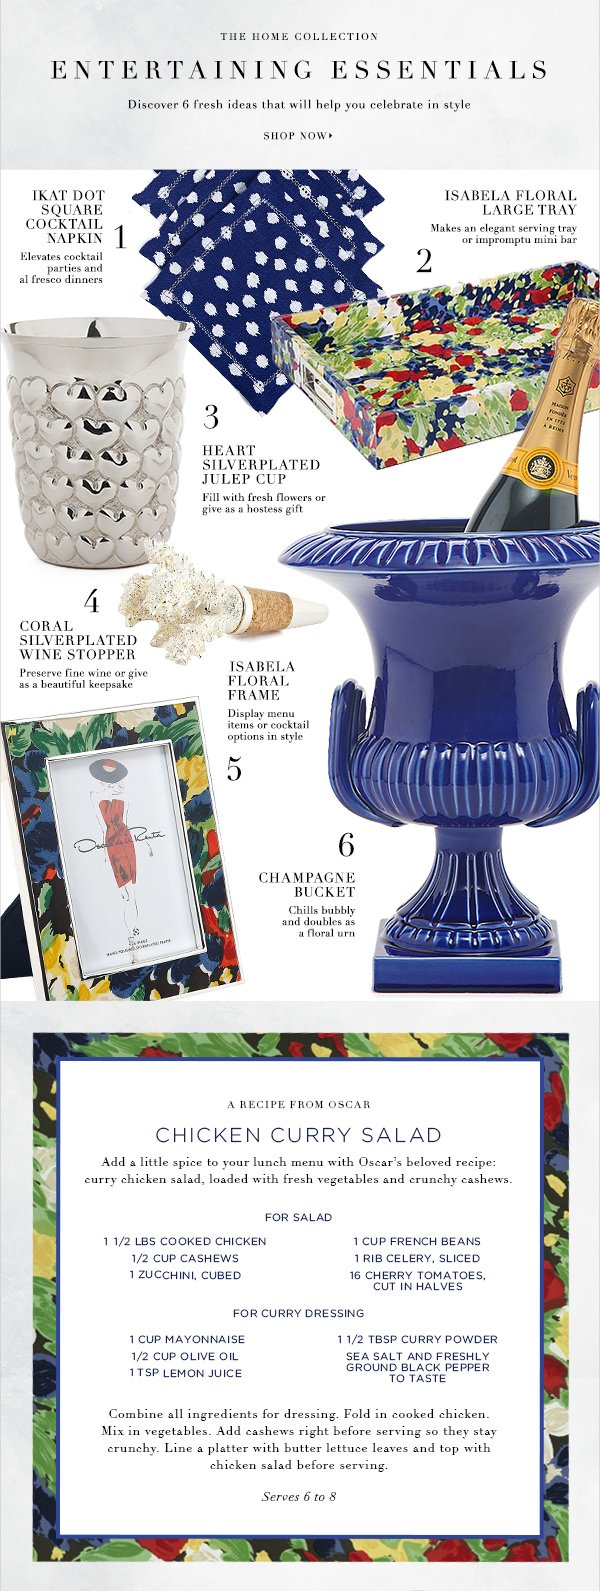 The Home Collection ENTERTAINING ESSENTIALS Discover 6 fresh ideas that will help you celebrate in style SHOP NOW IKAT SQUARE COCKTAIL NAPKIN Elevates cocktail parties and al fresco dinners ISABELA FLORAL LARGE TRAY Makes an elegant serving tray or impromptu mini bar HEART SILVERPLATED JULEP CUP Fill with fresh flowers or give as a hostess gift ISABELA FLORAL FRAME Display menu items or cocktail options in style CORAL SILVERPLATED WINE STOPPER Preserve fine wine or give as a beautiful keepsake CHAMPAGNE BUCKET Chills bubbly and doubles as a floral urn